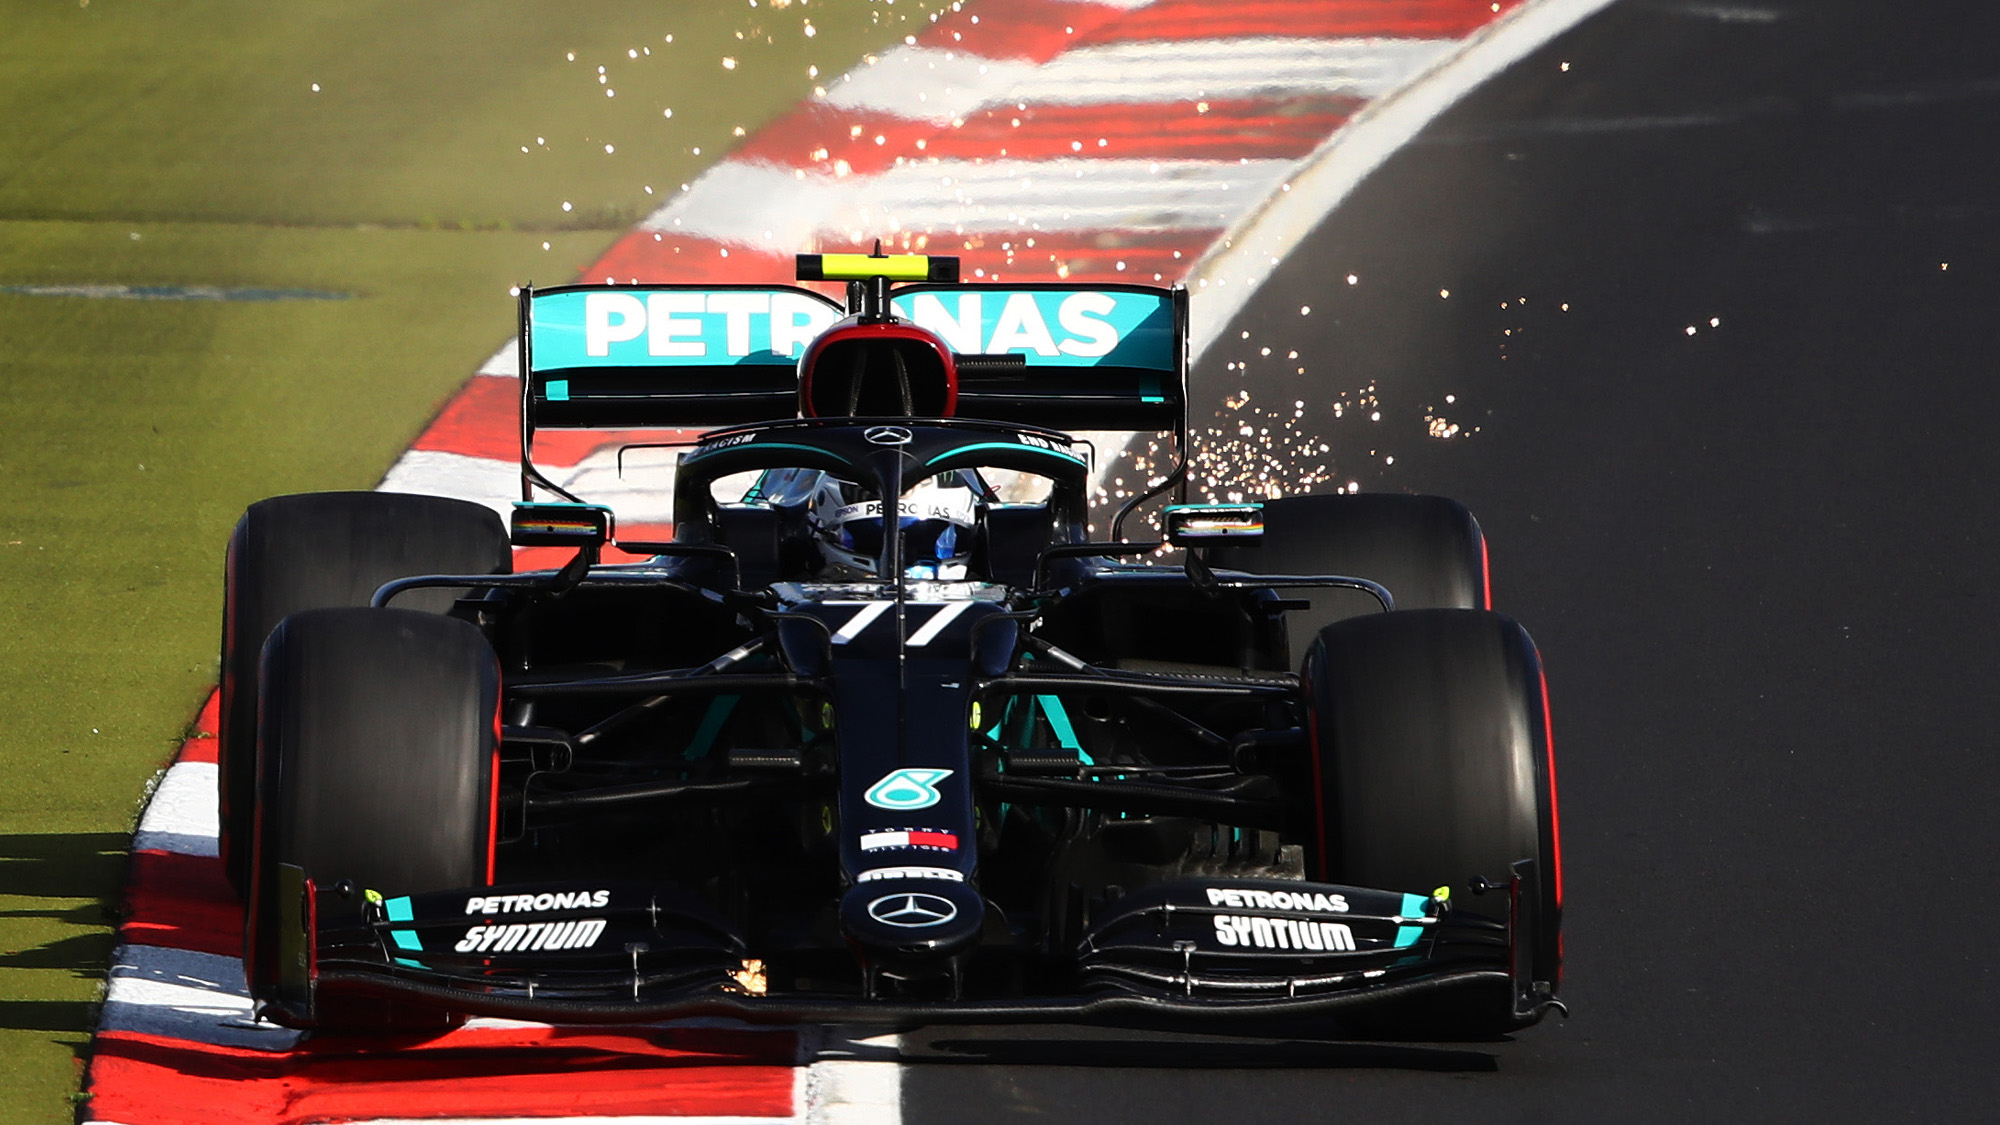 2020 F1 Eifel Grand Prix qualifying: Bottas turns up the heat at chilly Nürburgring